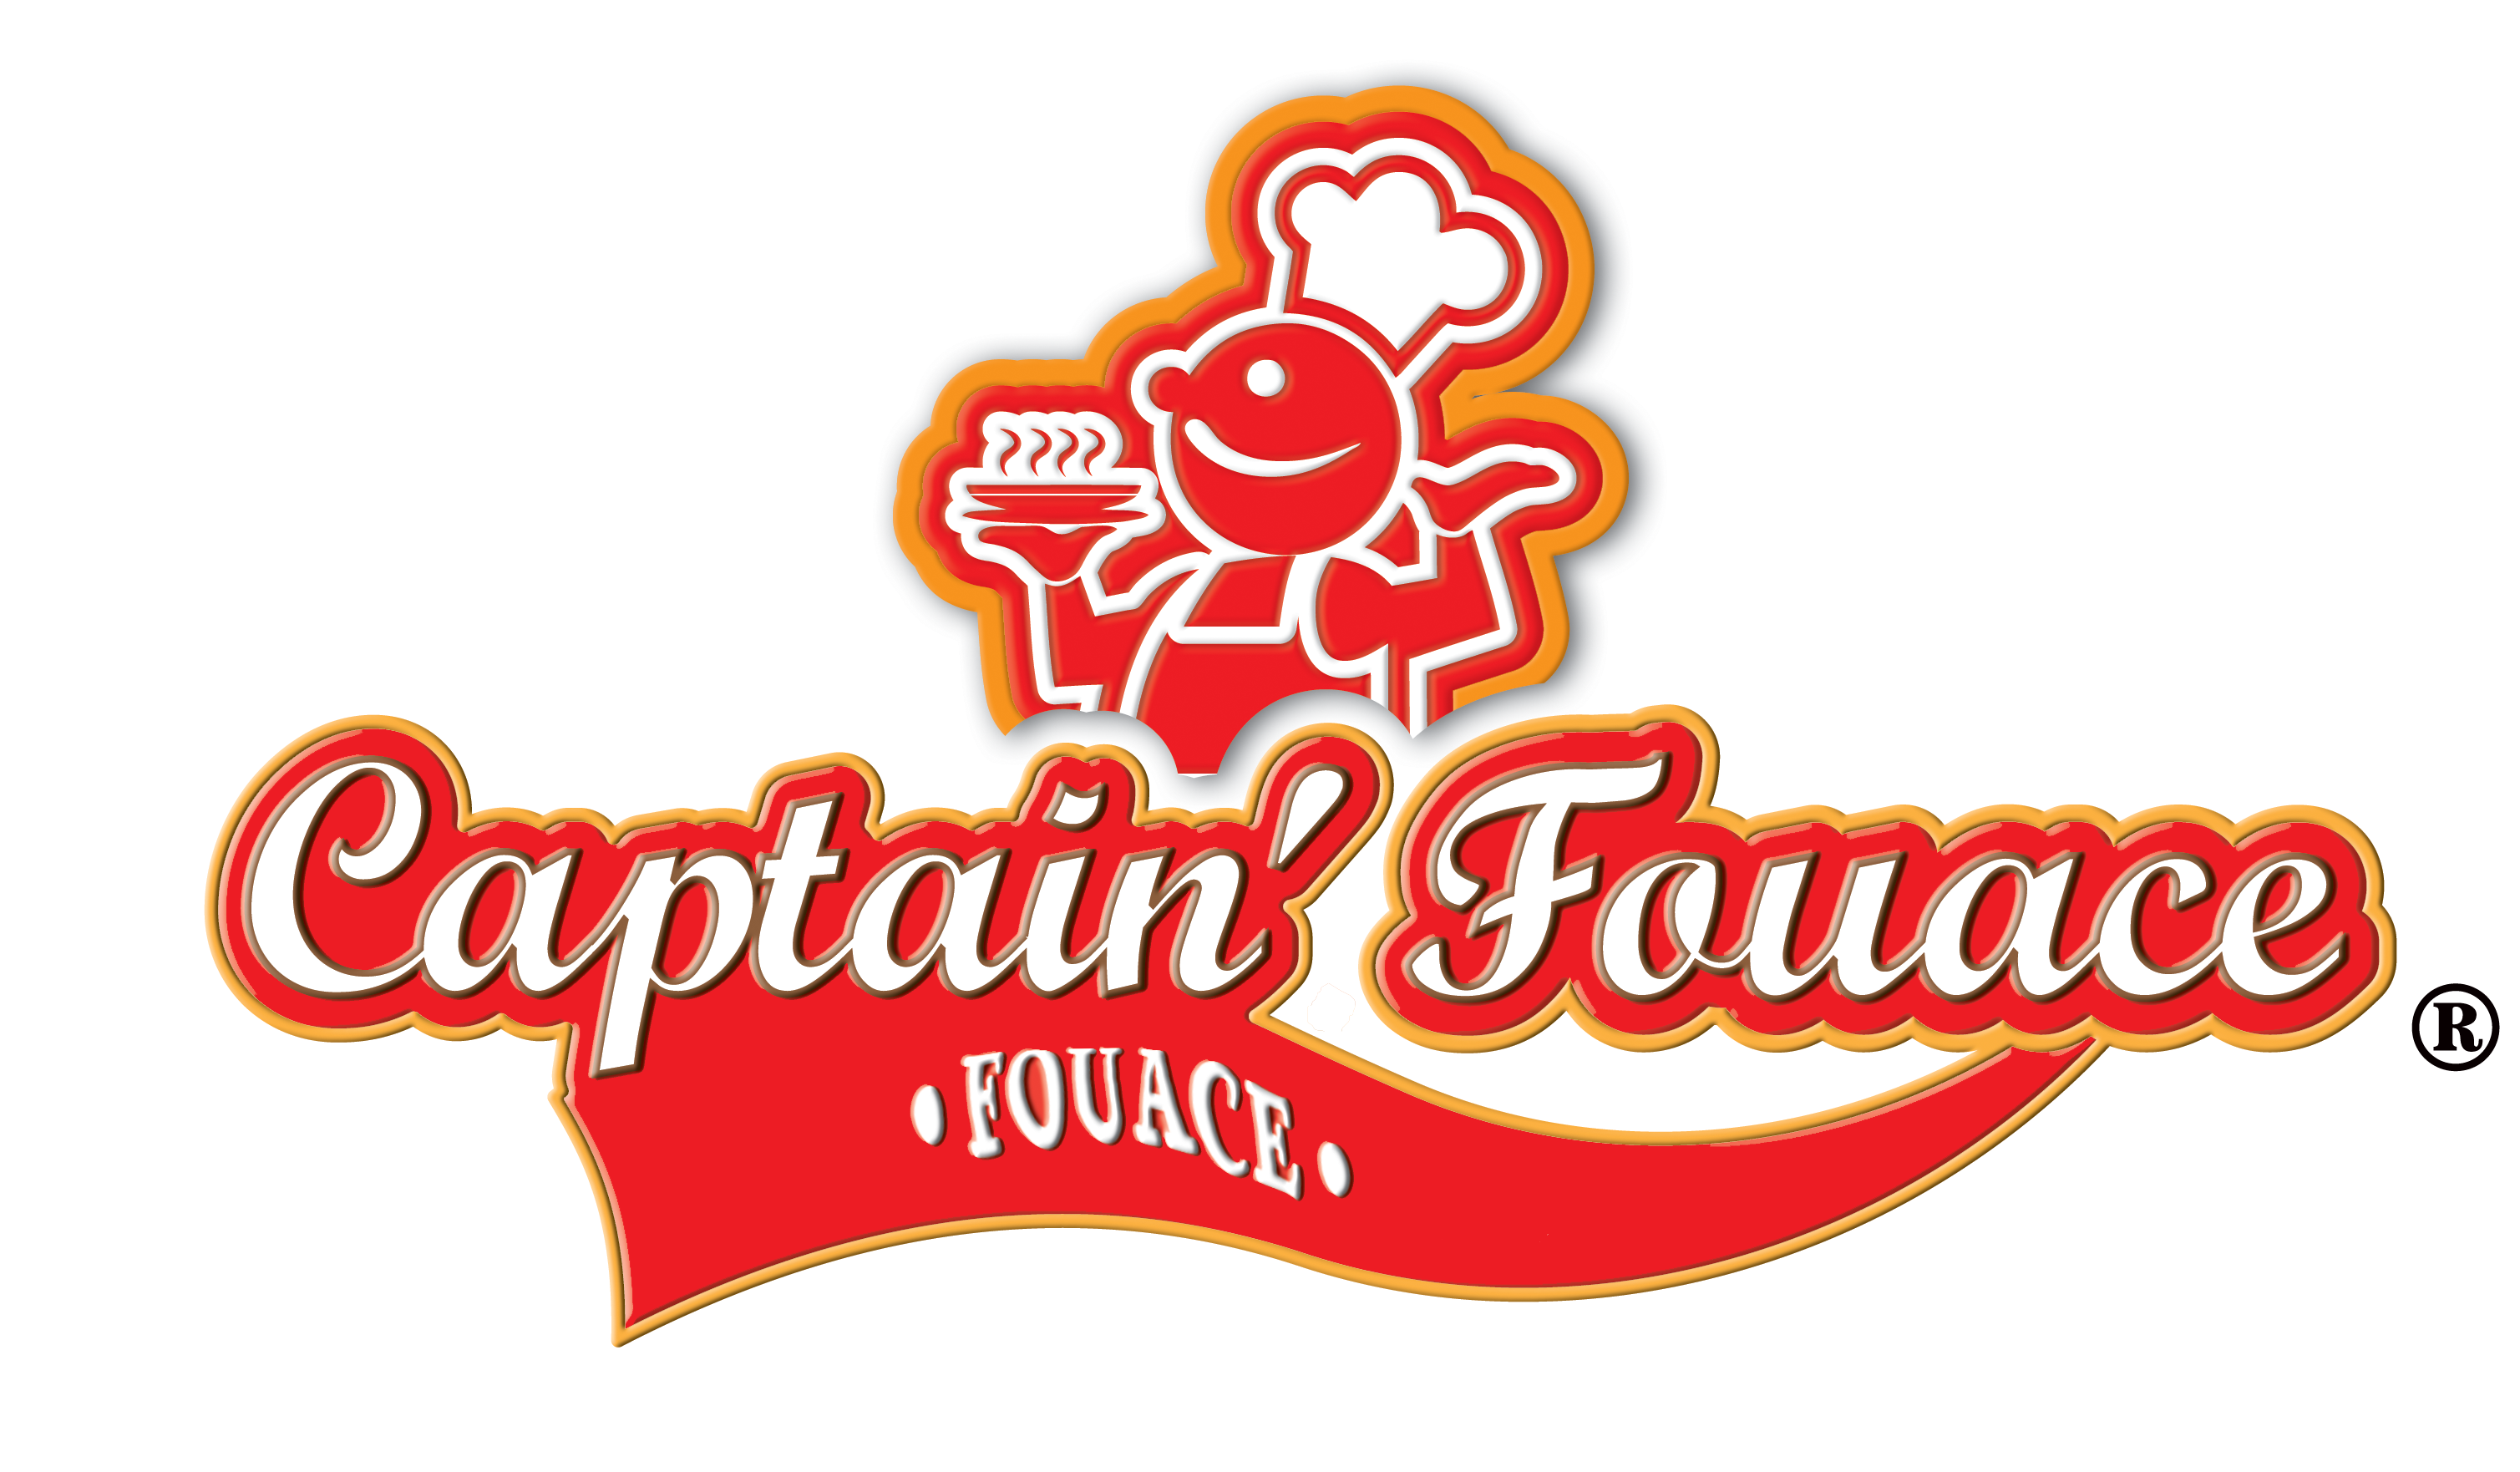 Captain Fouace